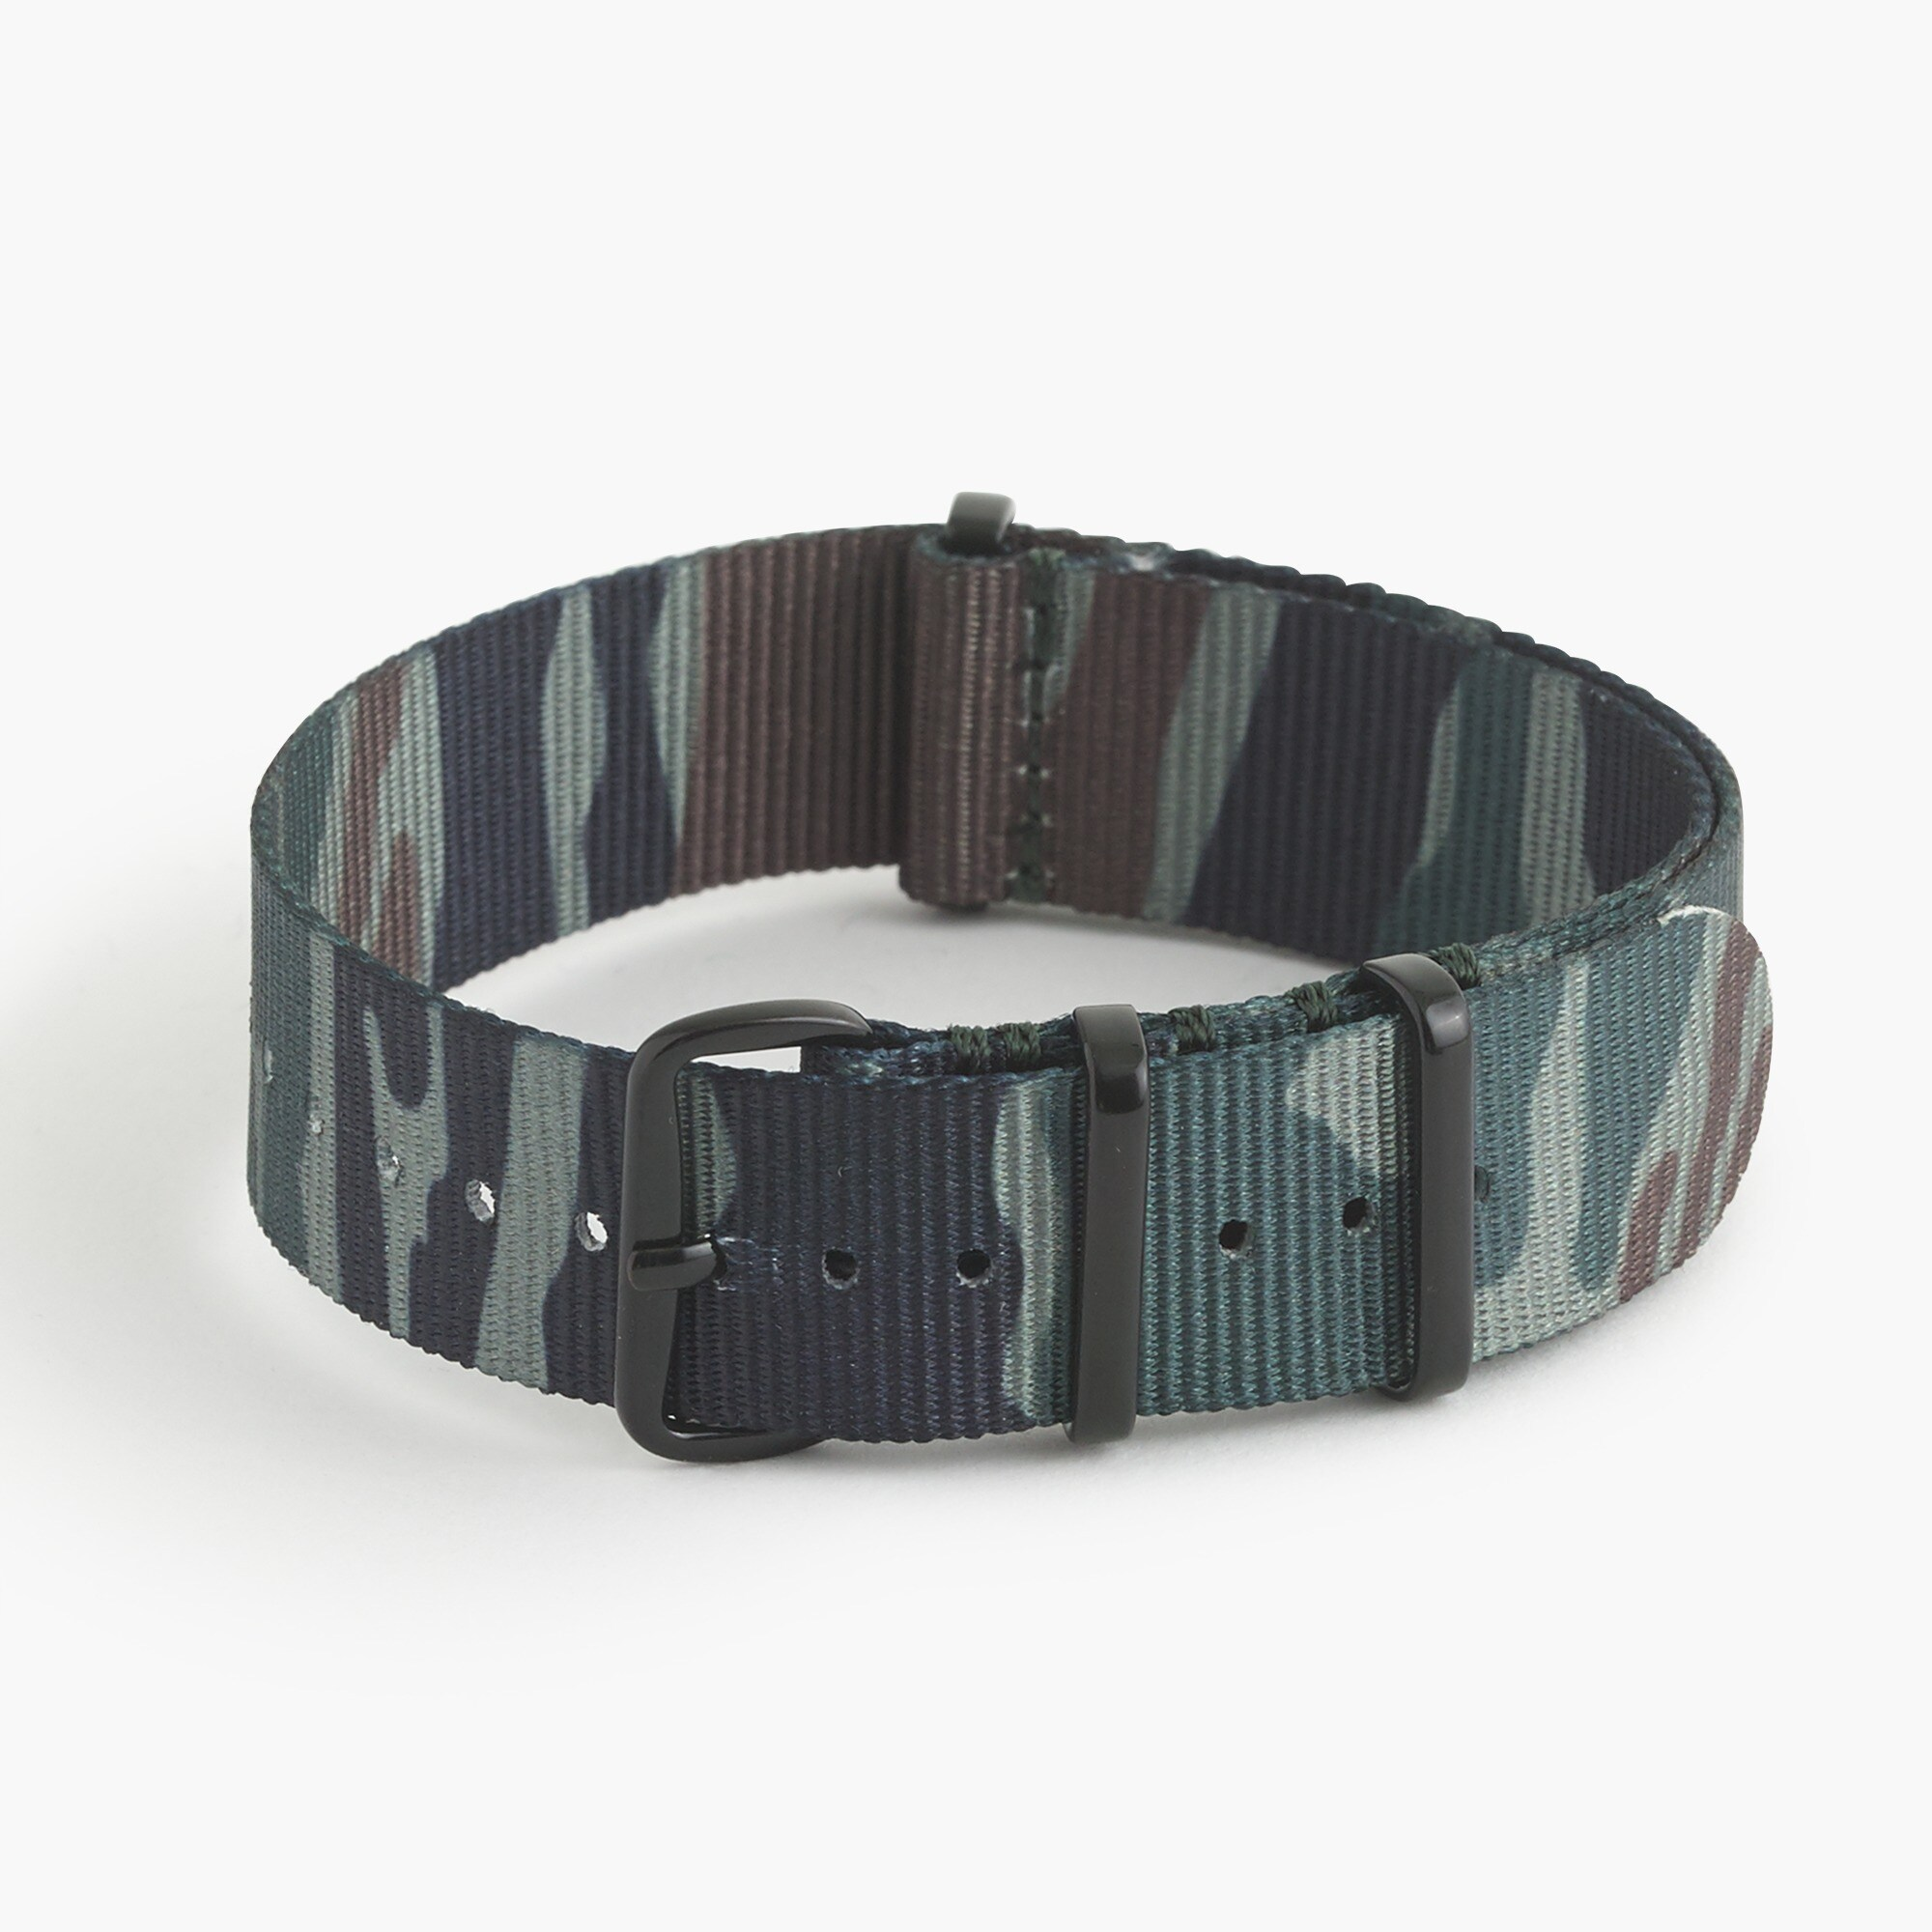 Watch strap in camo